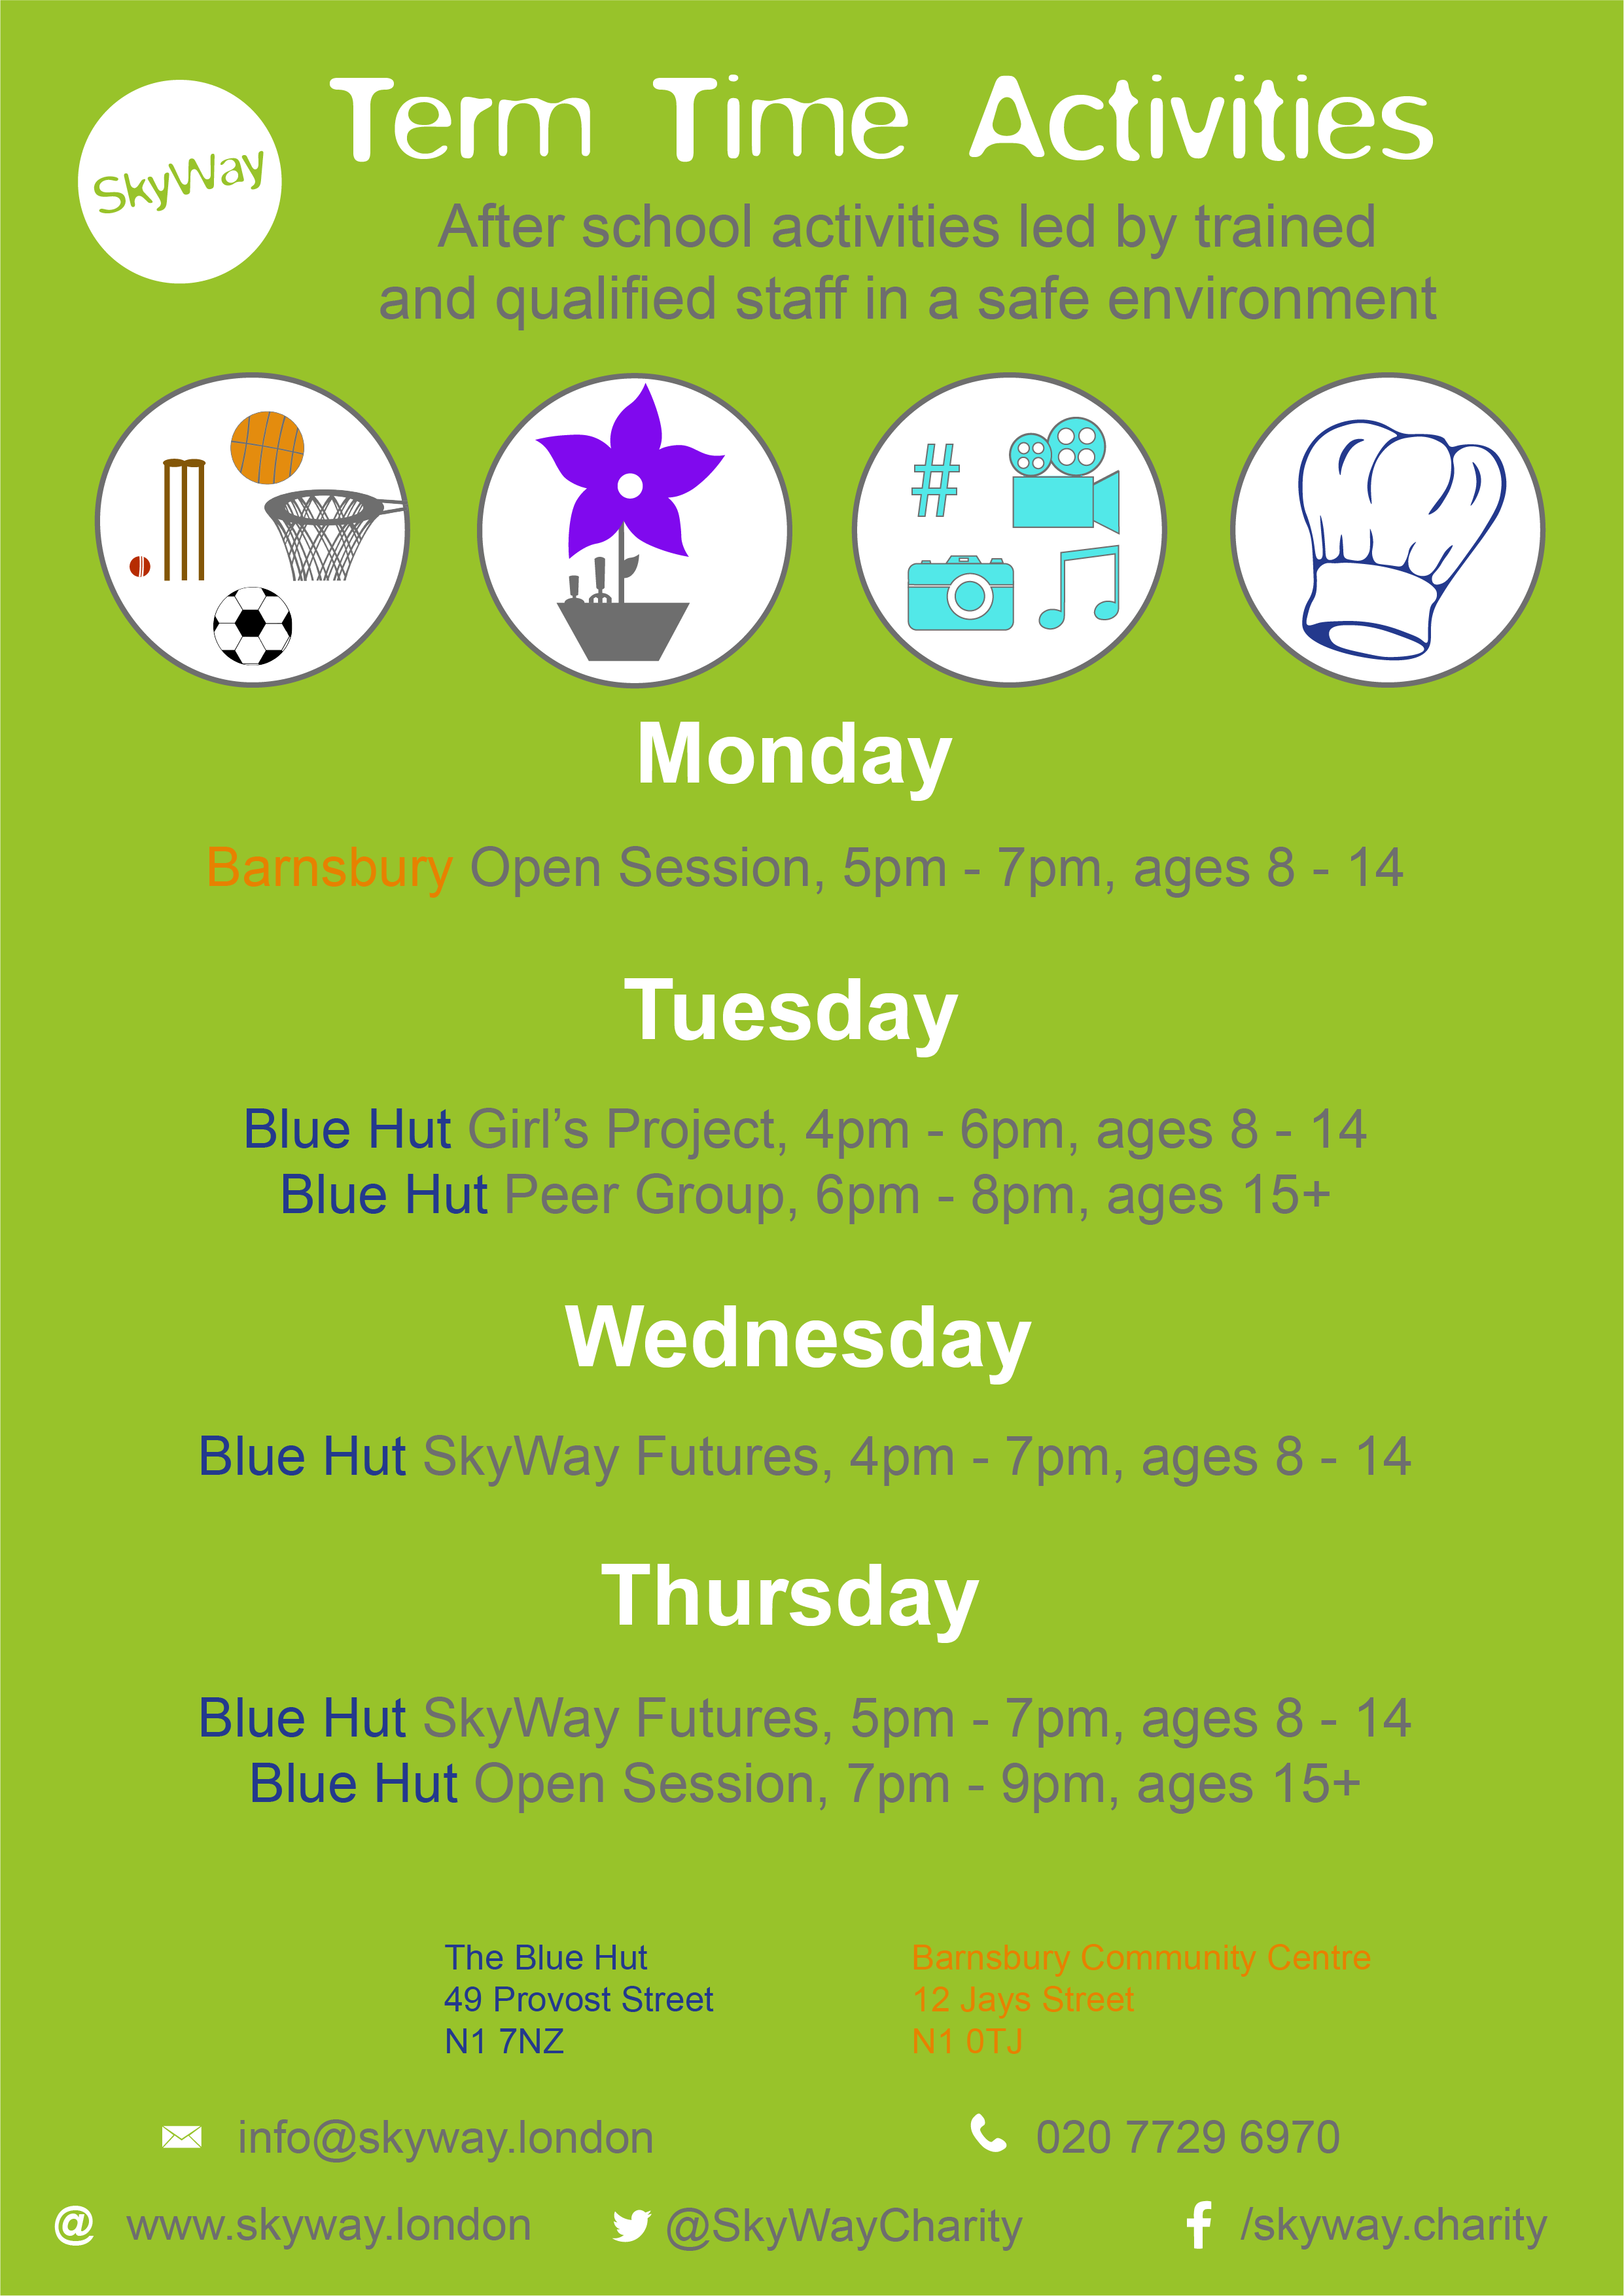 Term Time Activities (April 2017)